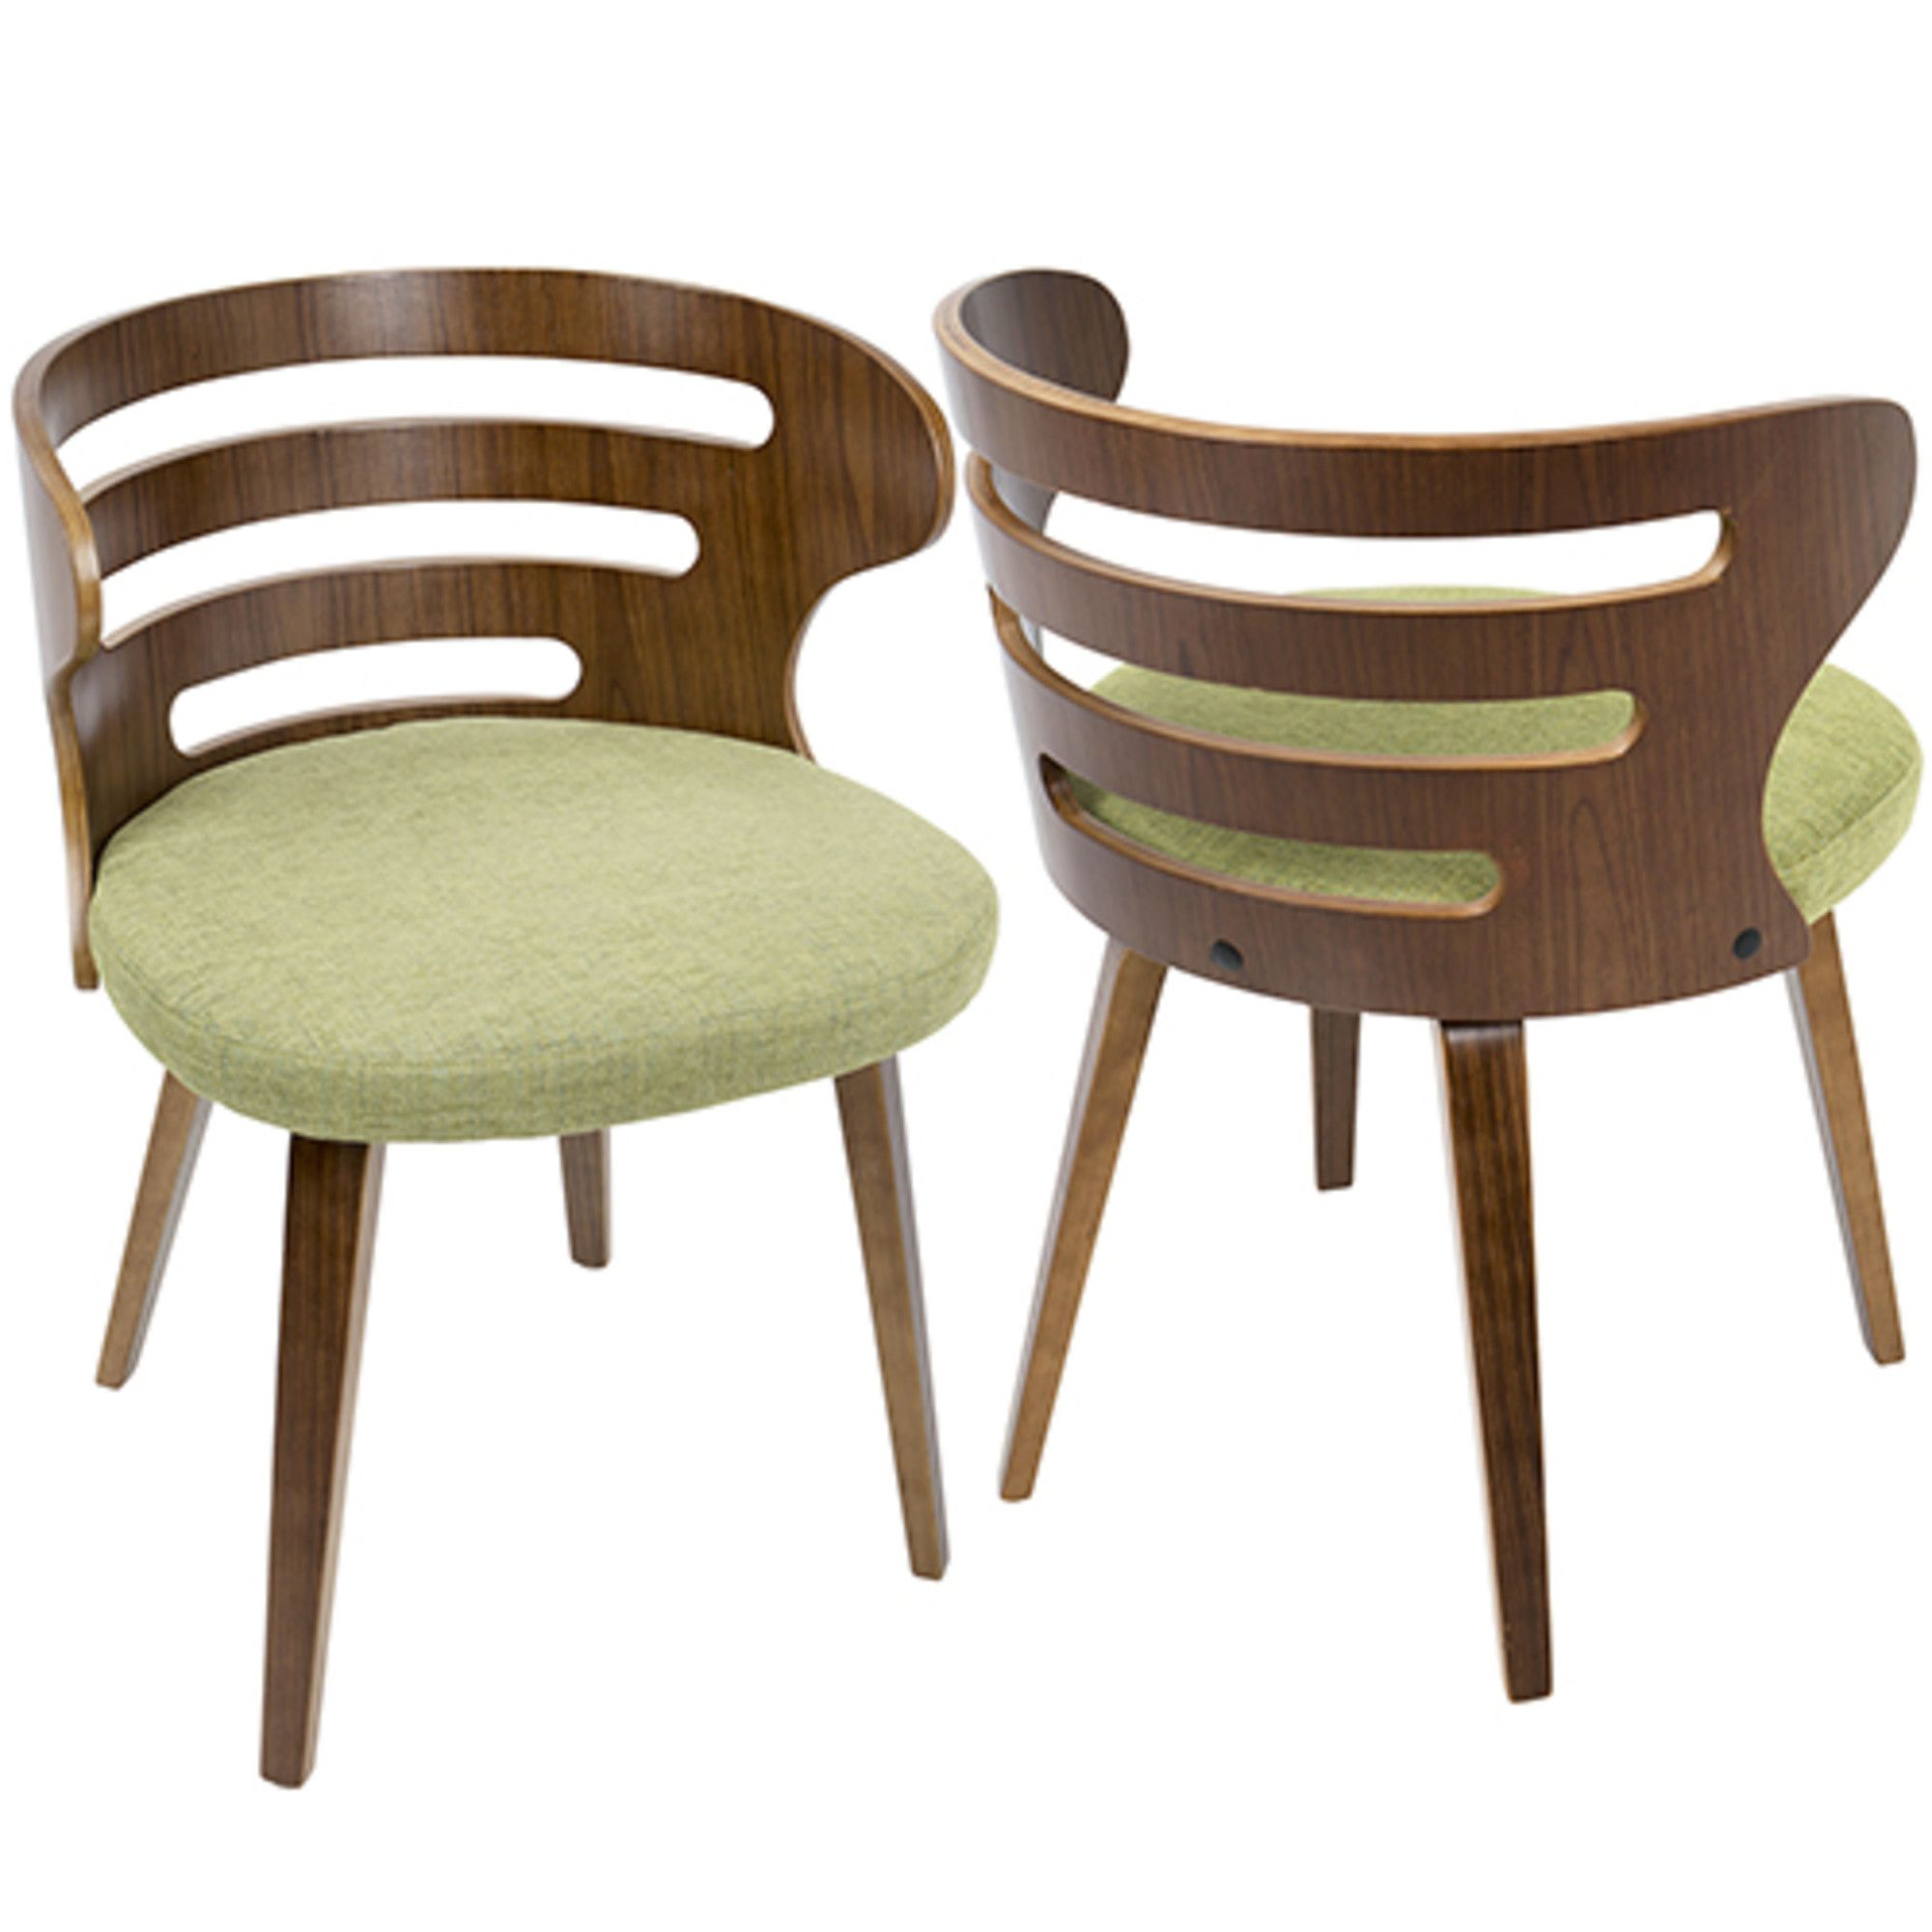 Cosi Mid Century Modern Dining Accent Chair In Walnut Green